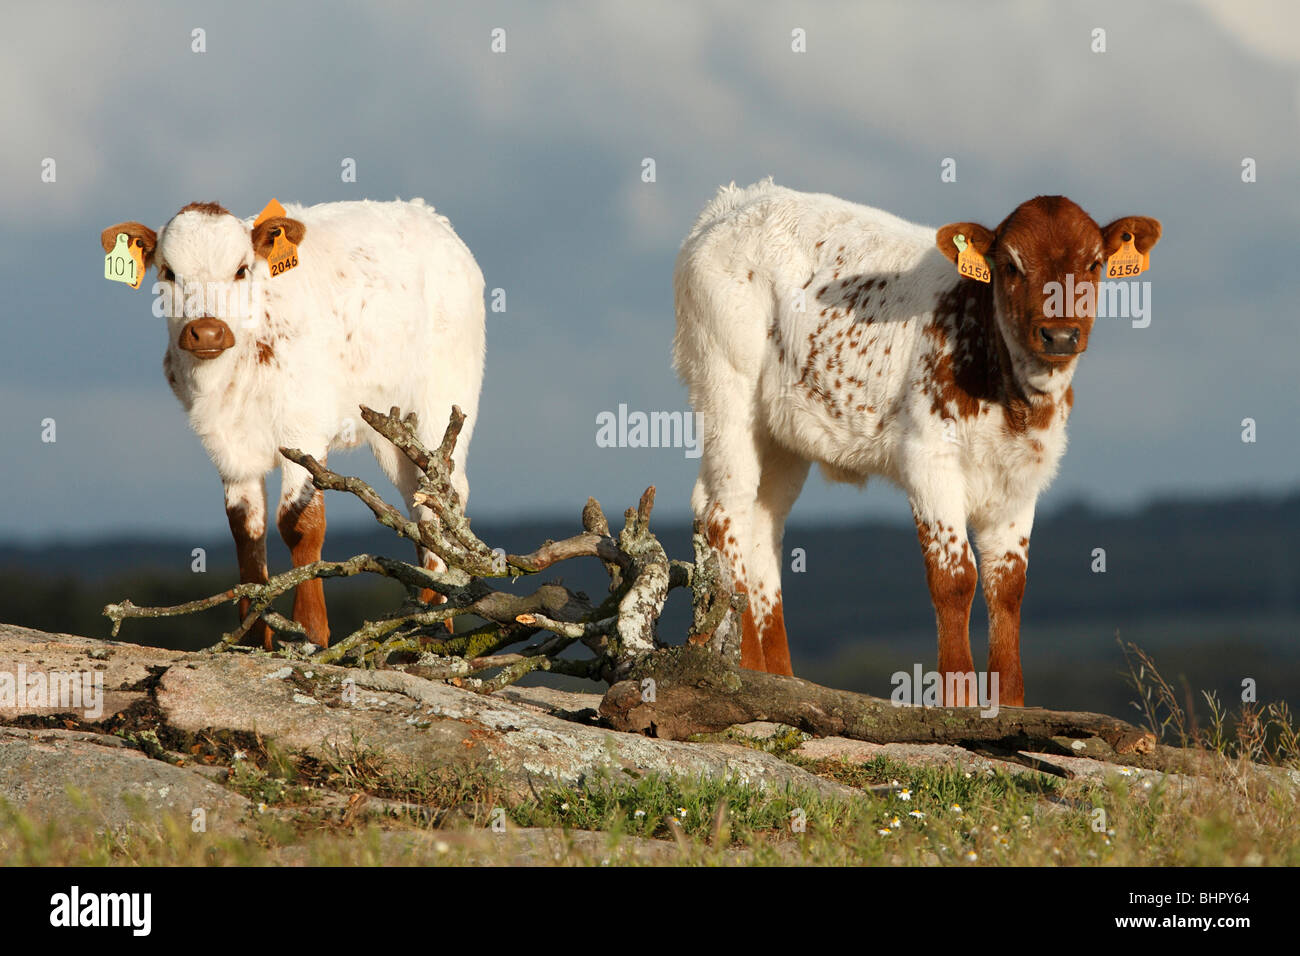 Cattle, bull calf with ear tags, beef cattle breed, Portugal - Stock Image